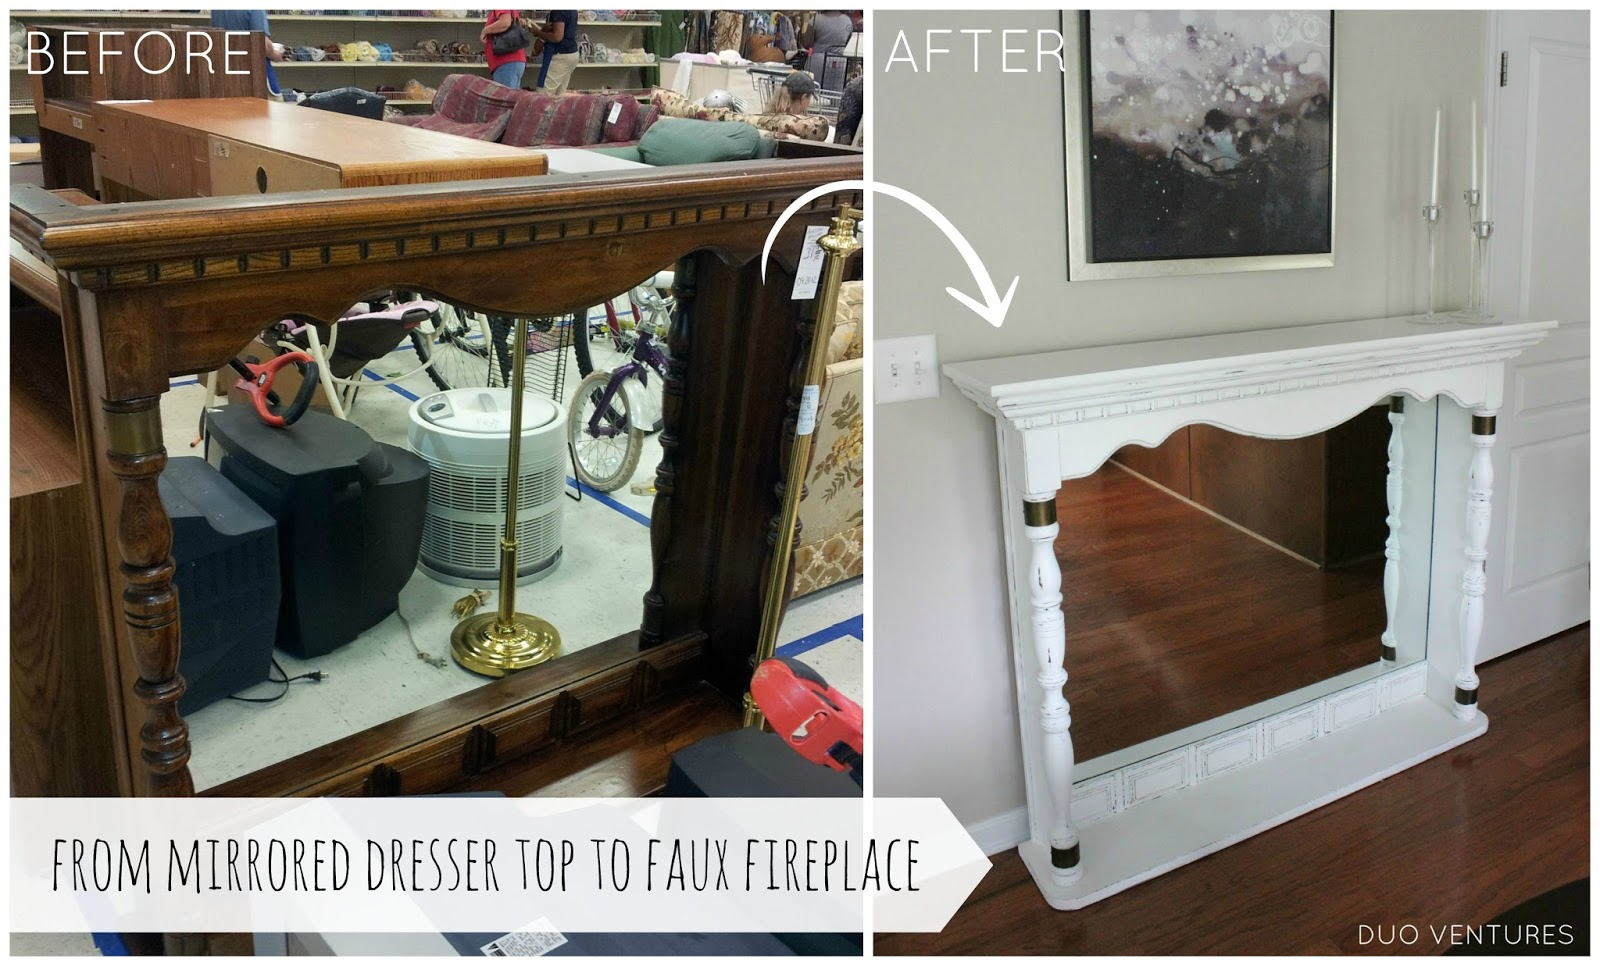 Duo Ventures: Dresser Top to Faux Fireplace